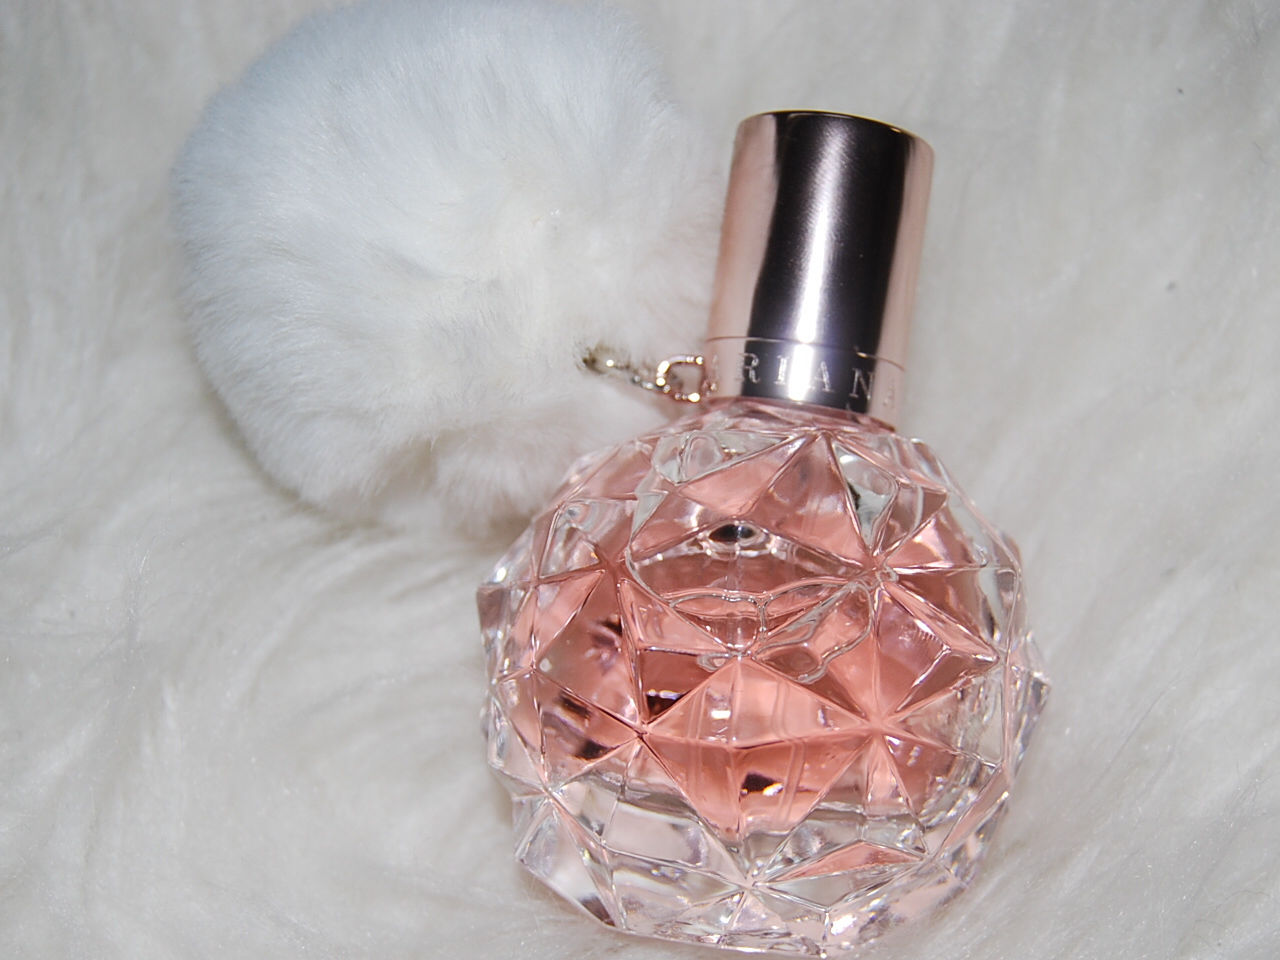 Ari By Ariana Grande Parfumreview Lifestylelover